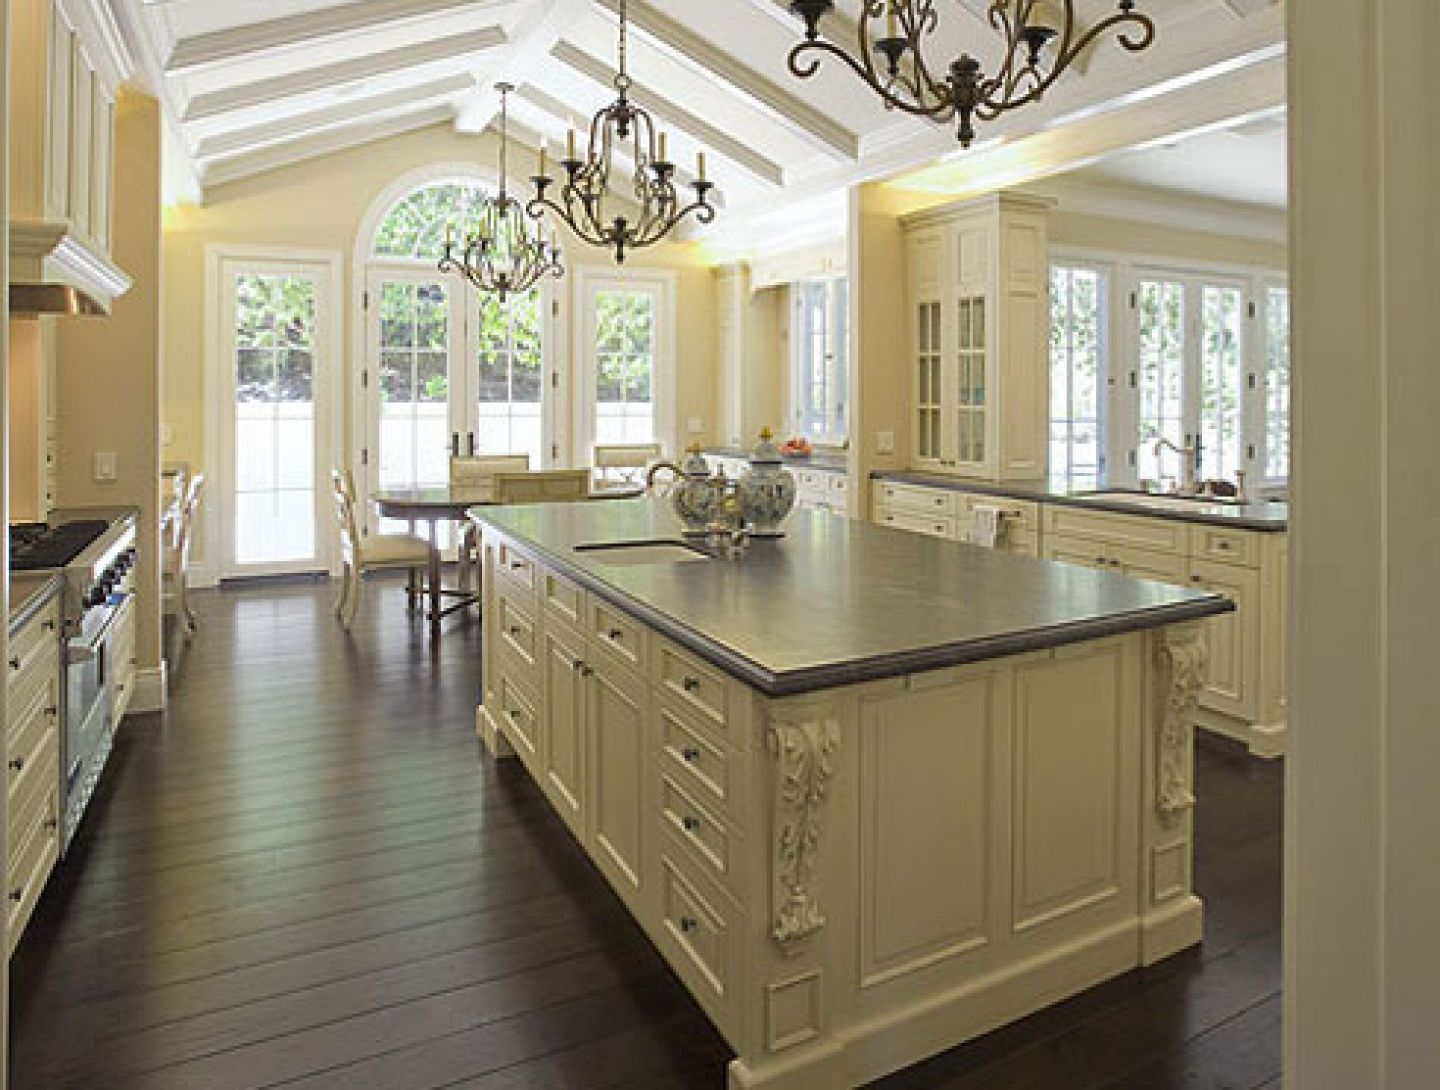 pictures-of-french-country-kitchen-design-french-country-kitchen